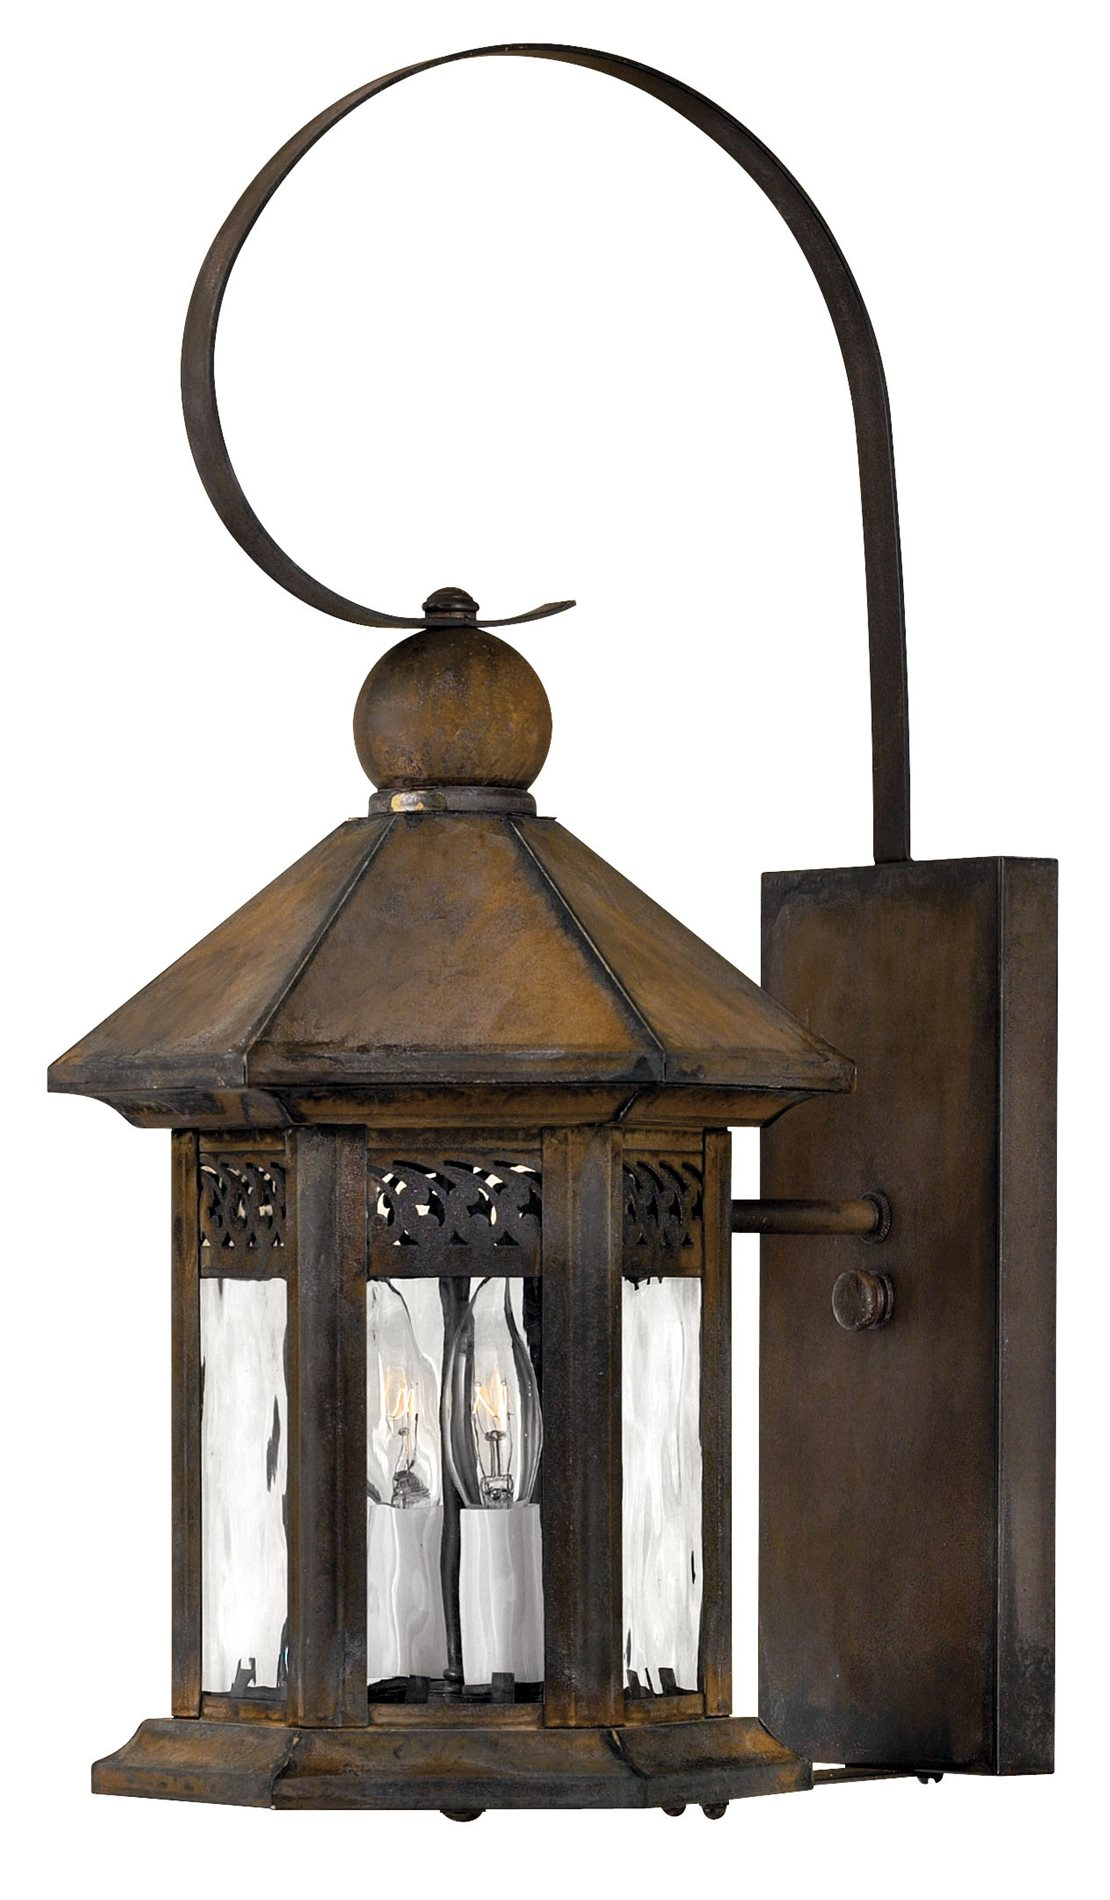 Hinkley Lighting 2990sn Westwinds Traditional Outdoor Wall Sconce Small Hk 2990 Sn